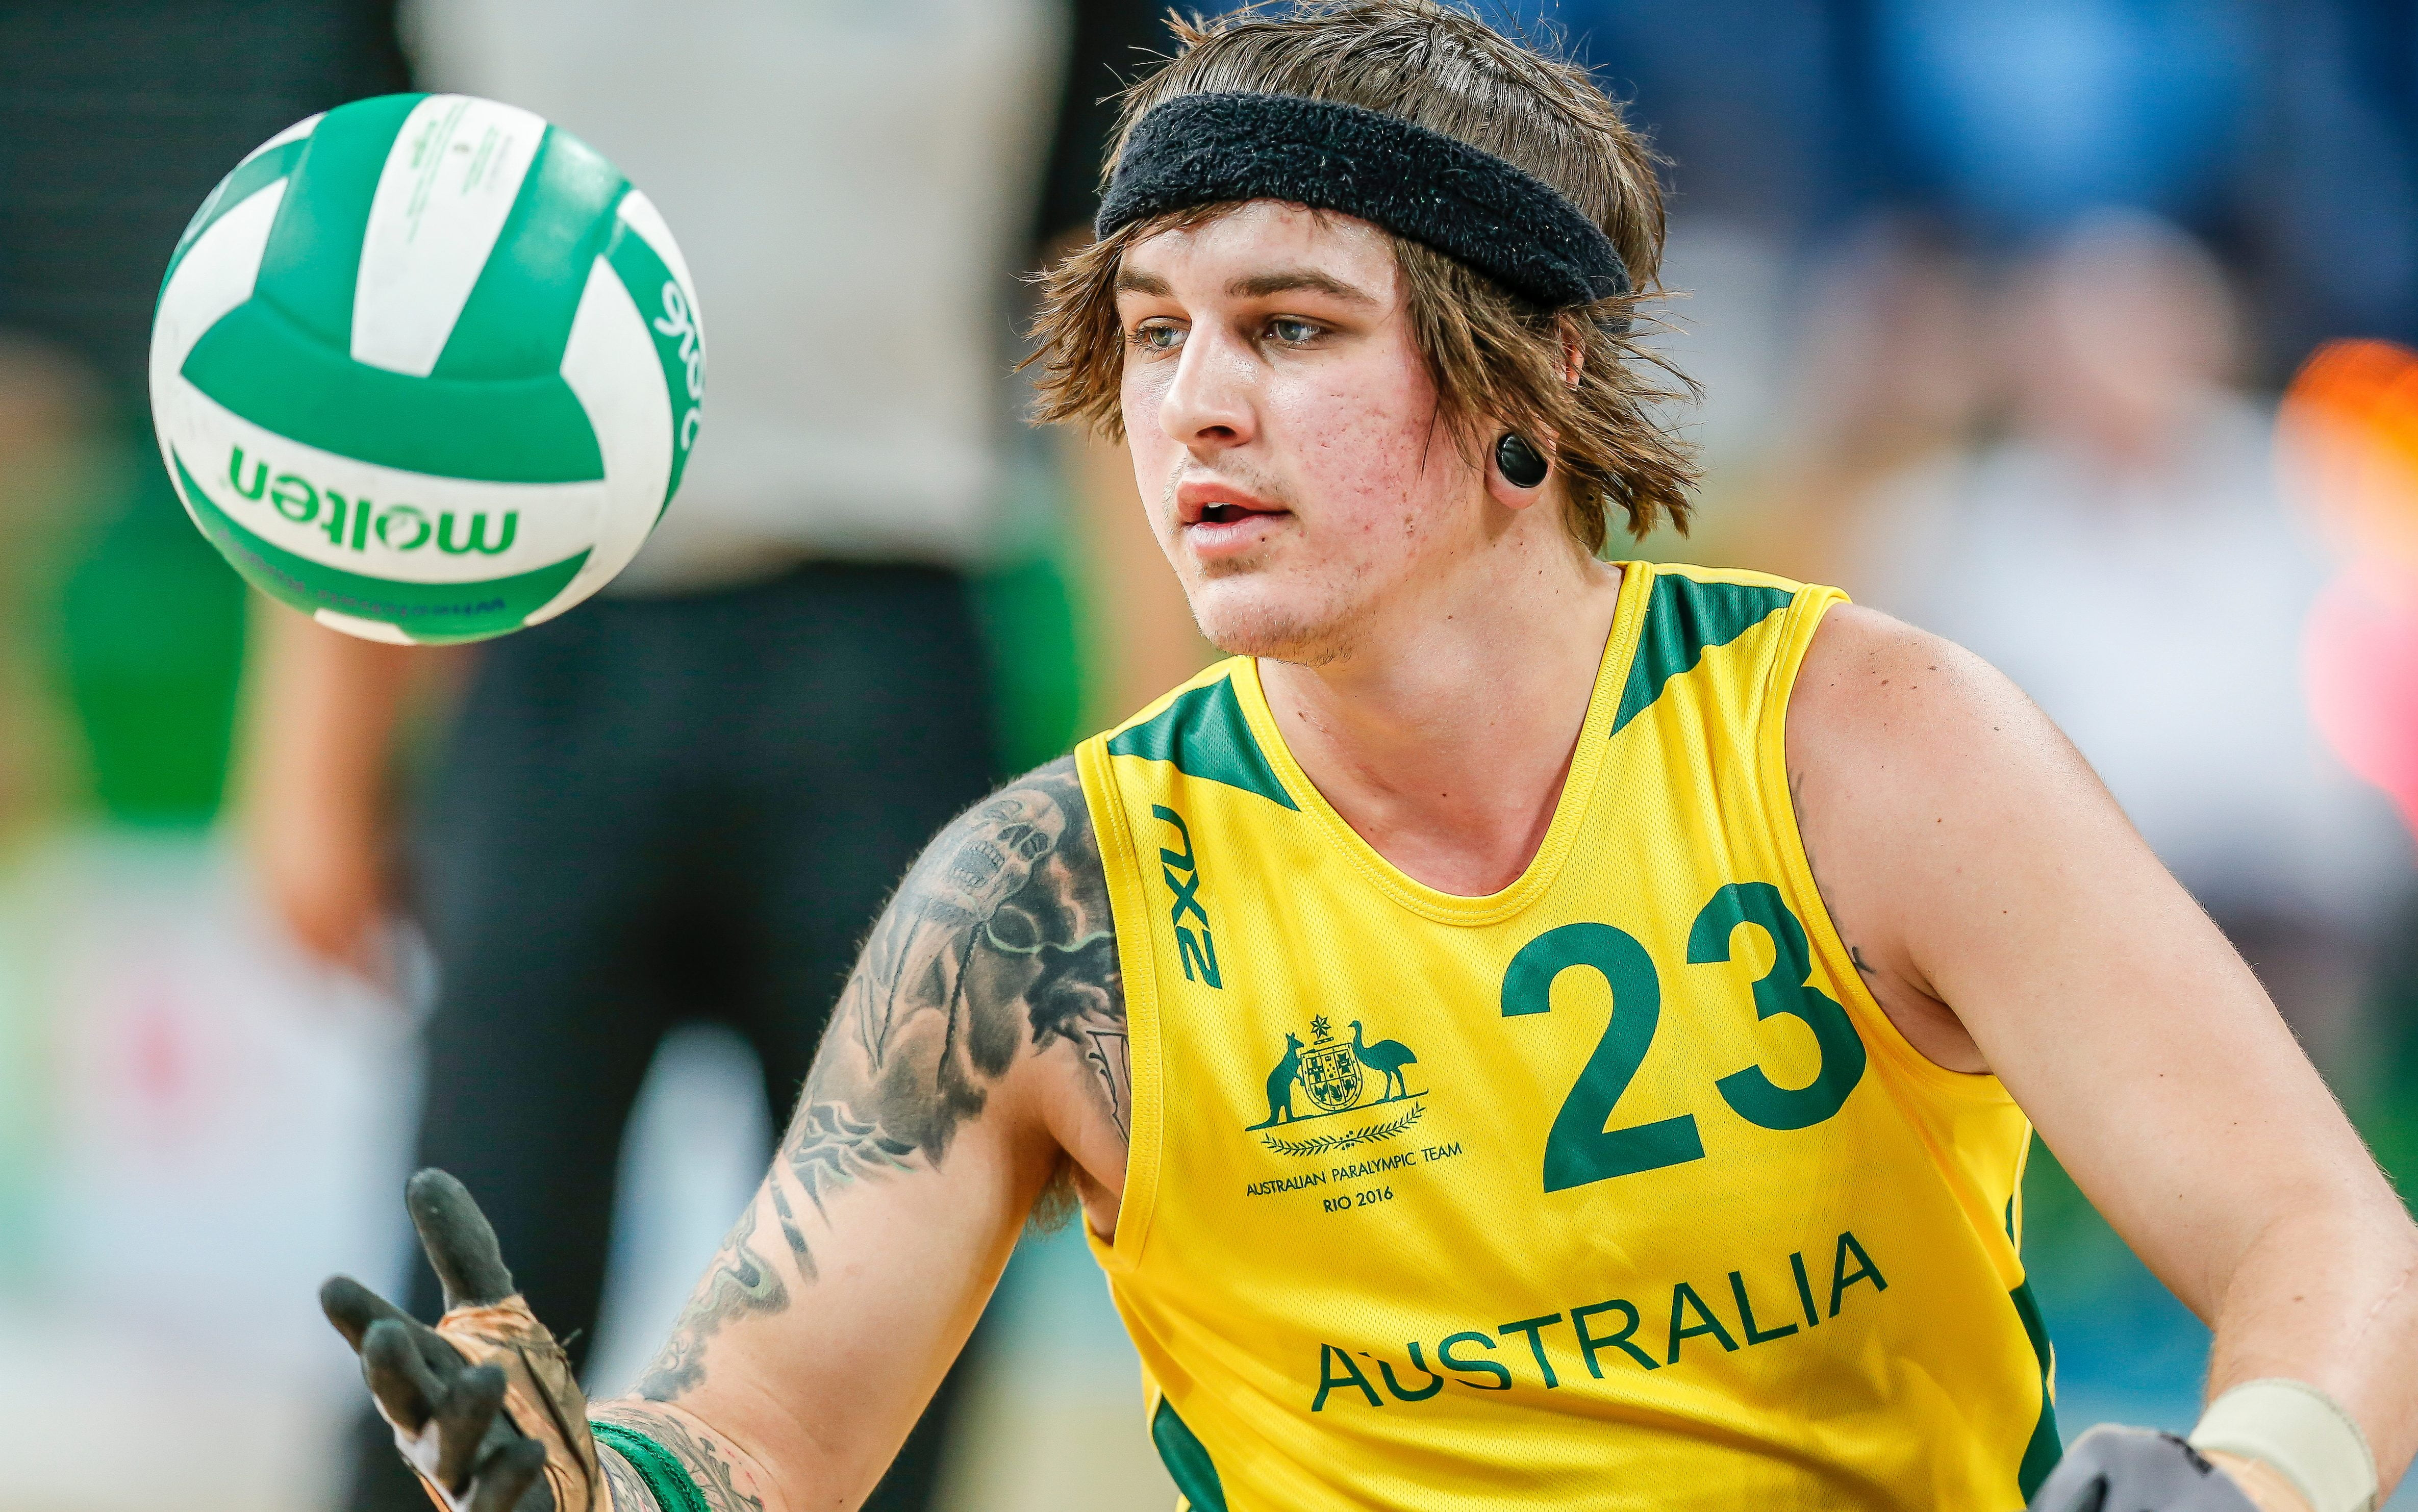 Australian Steelers crush Thailand in opening match of IWRF Asia Oceania Championship